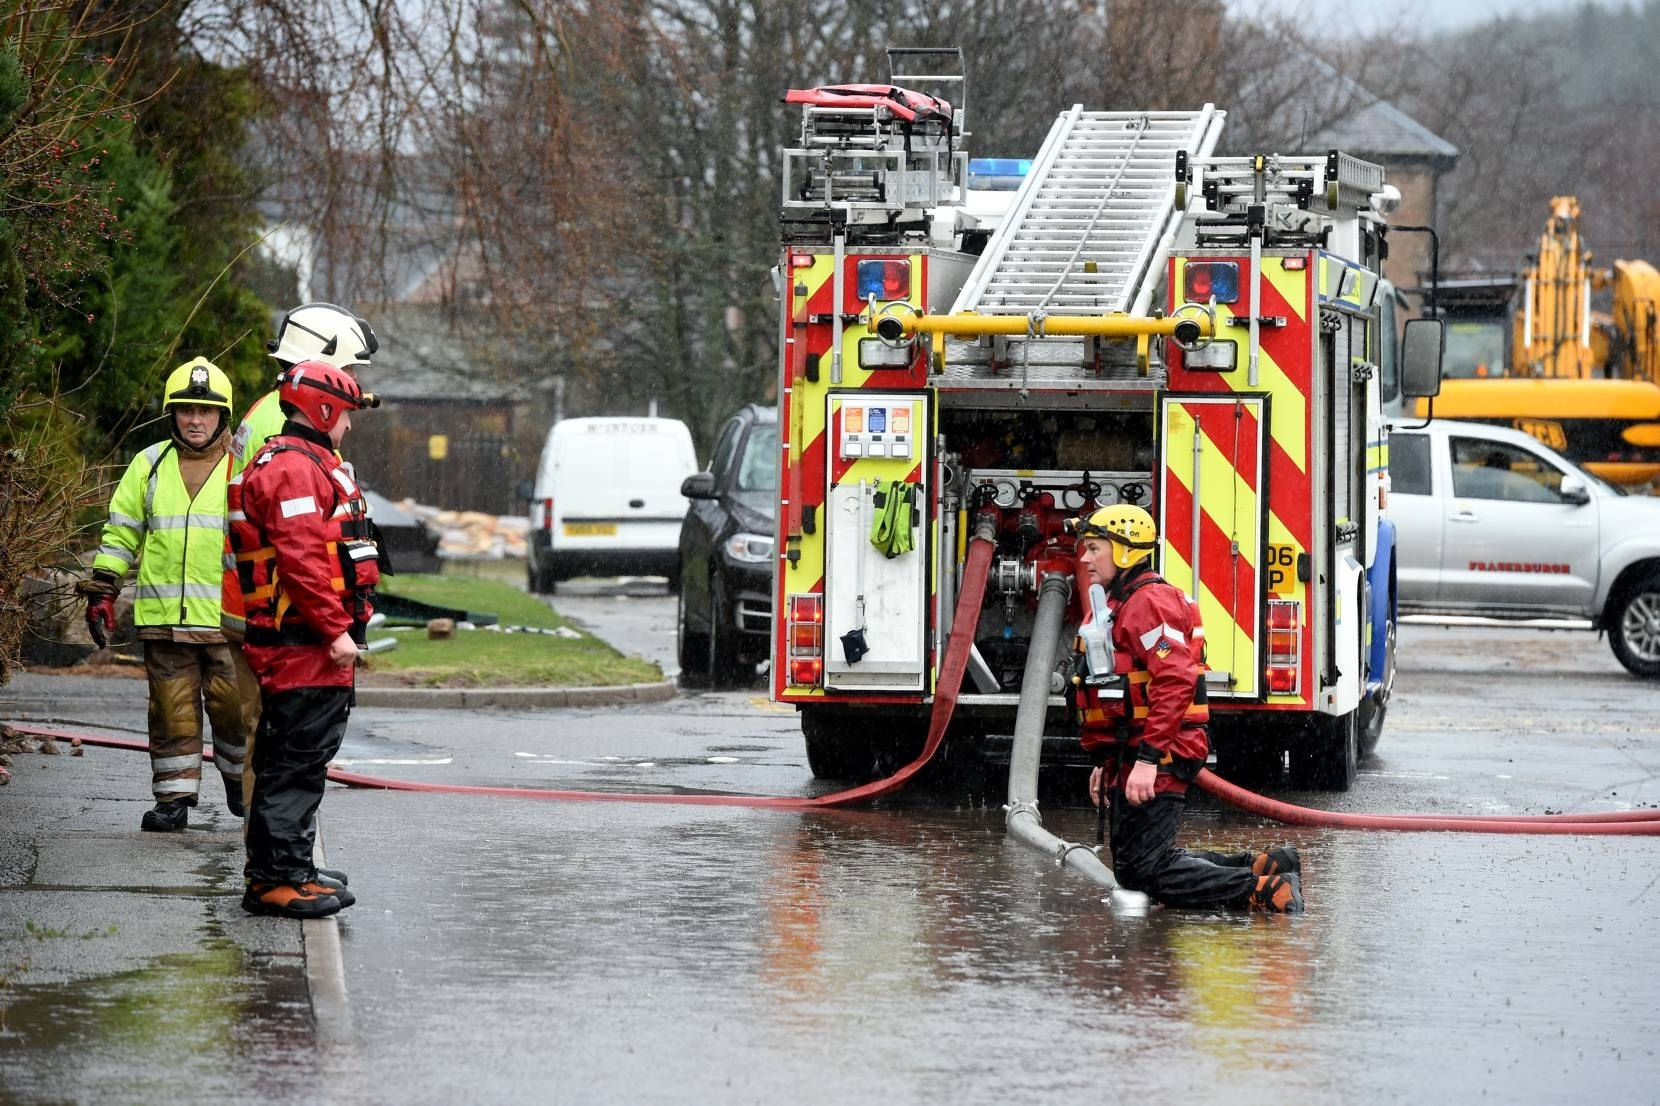 Fire crews try to clear flood water in Ballater